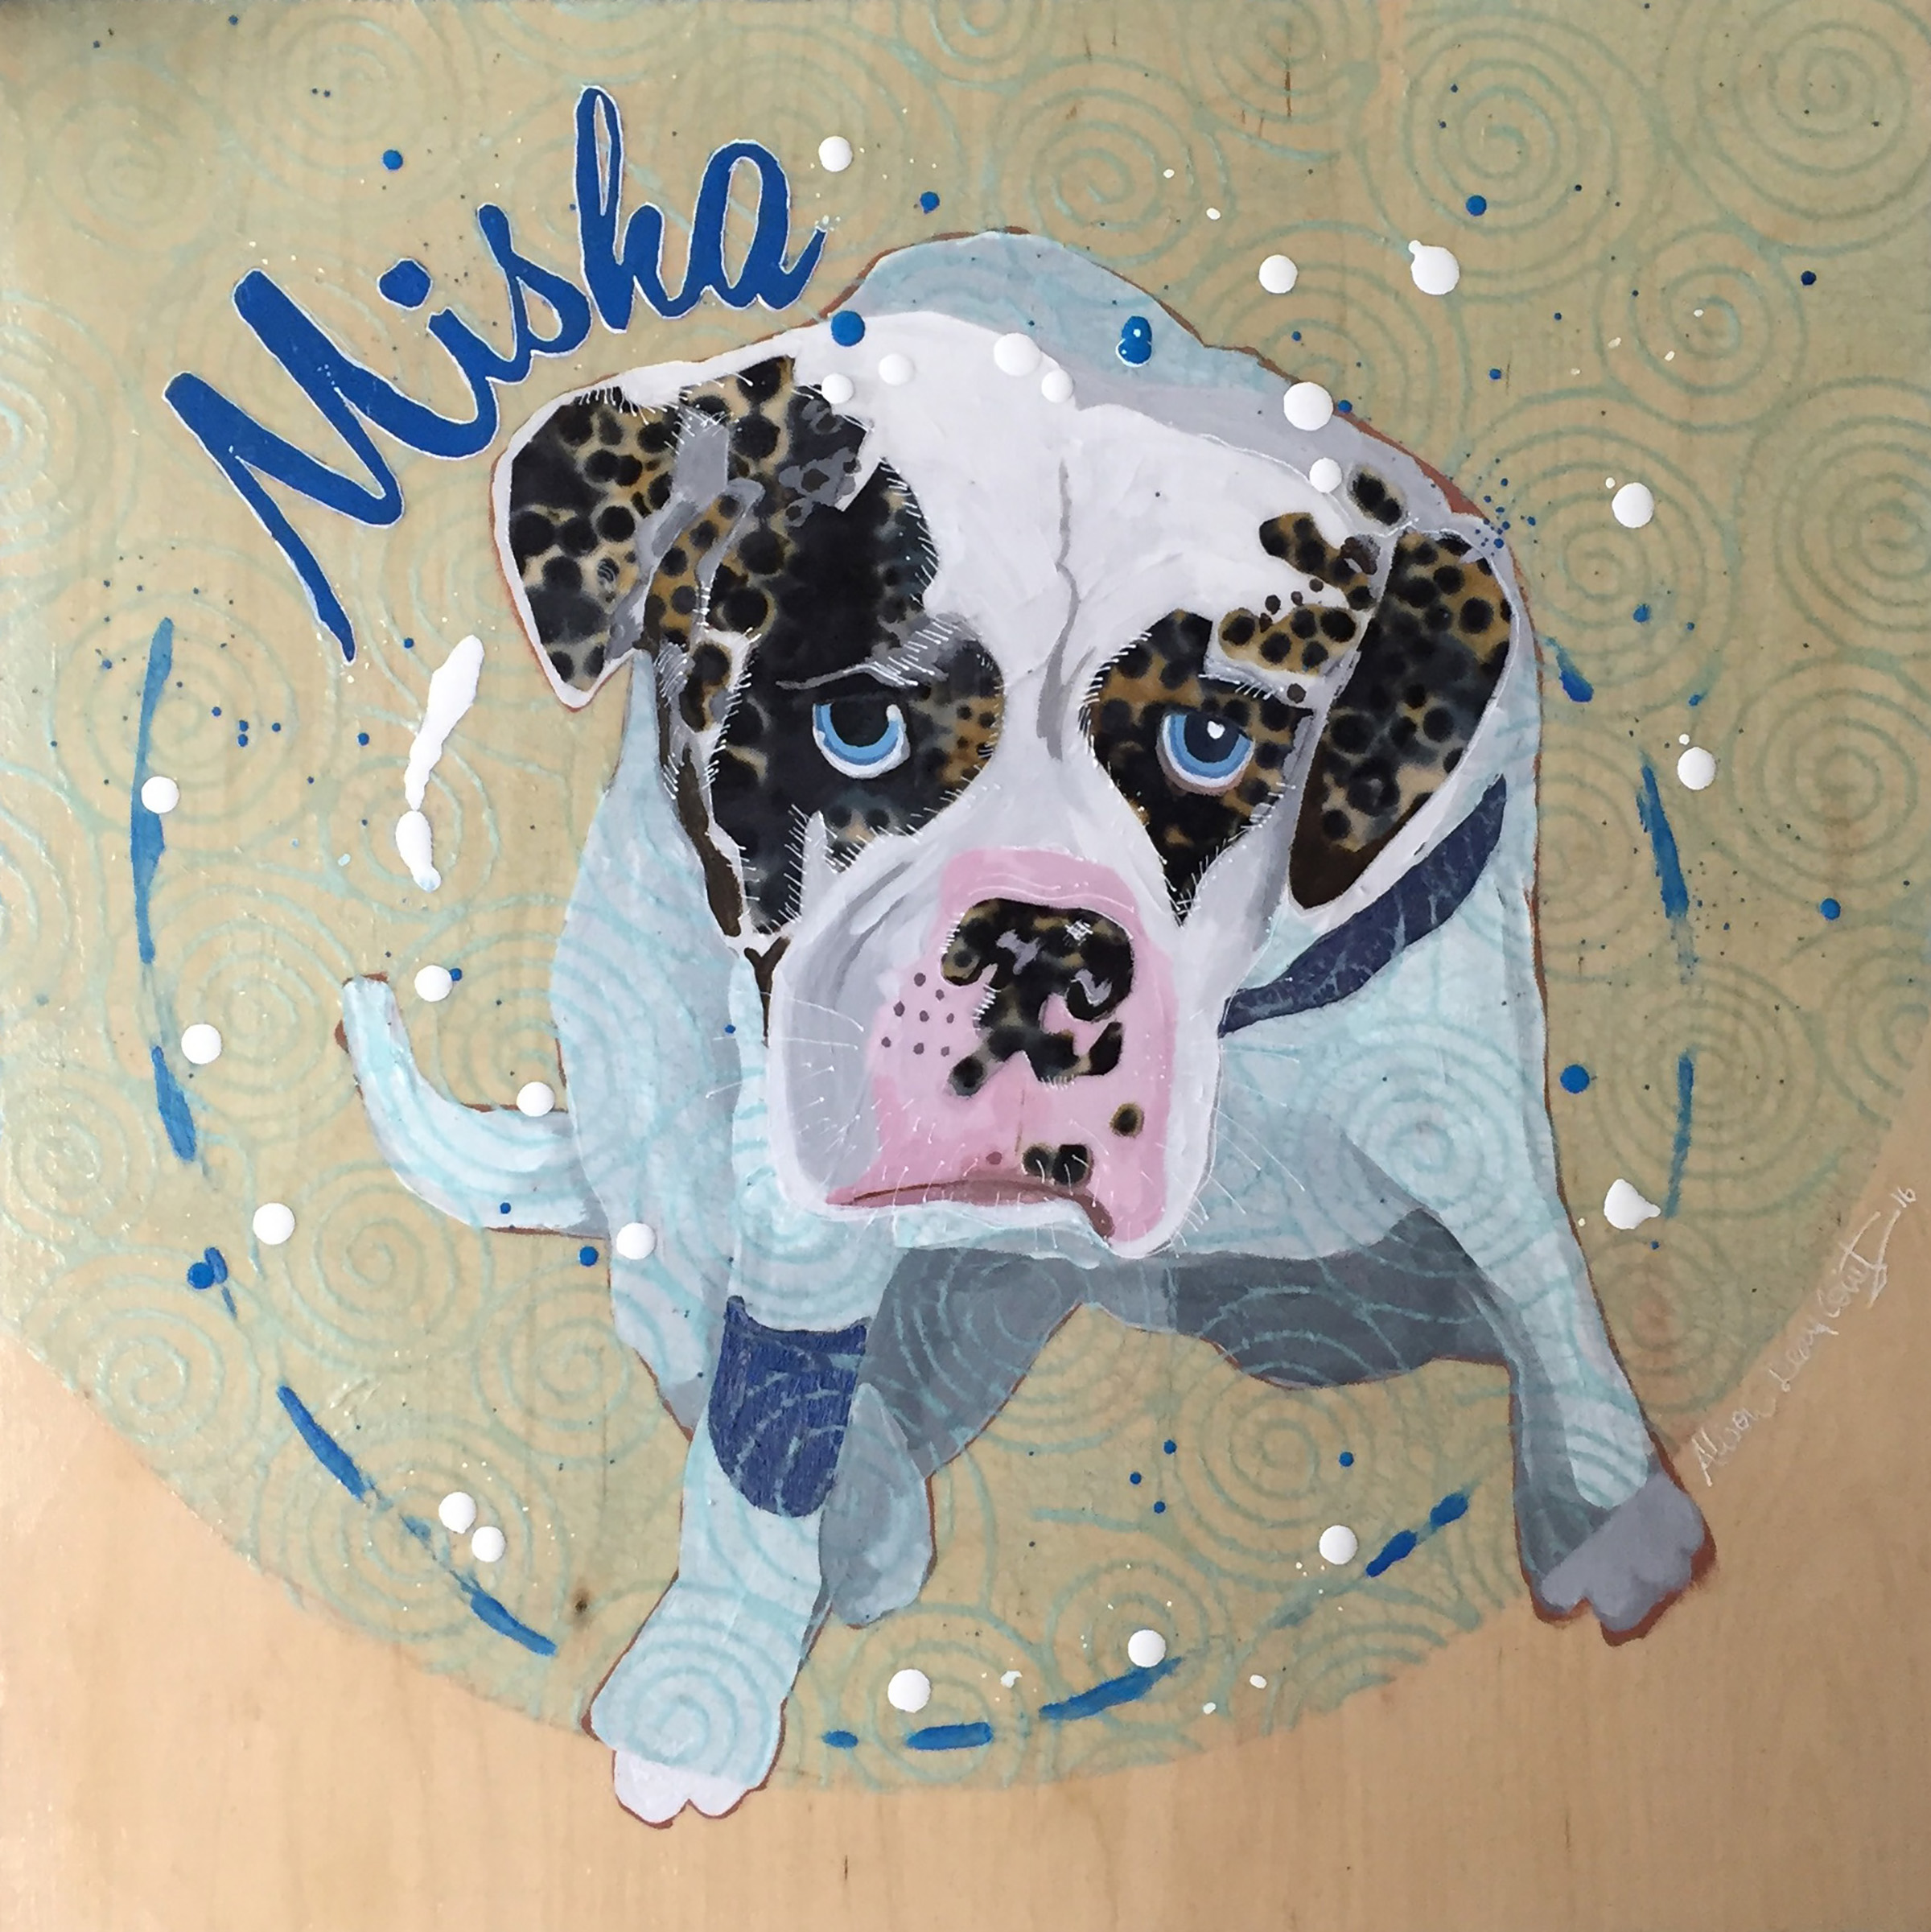 """Misha - 18""""x 18"""" - 2017Private Collection - Fort McMurray, ABMy inspiration is a friend's Alapaha Blue Blood Bulldog. She has such an interesting face and colour markings that I wanted to interpret in acrylic paint, fabric and paper.Technique: Acrylic paint and fabric collage."""